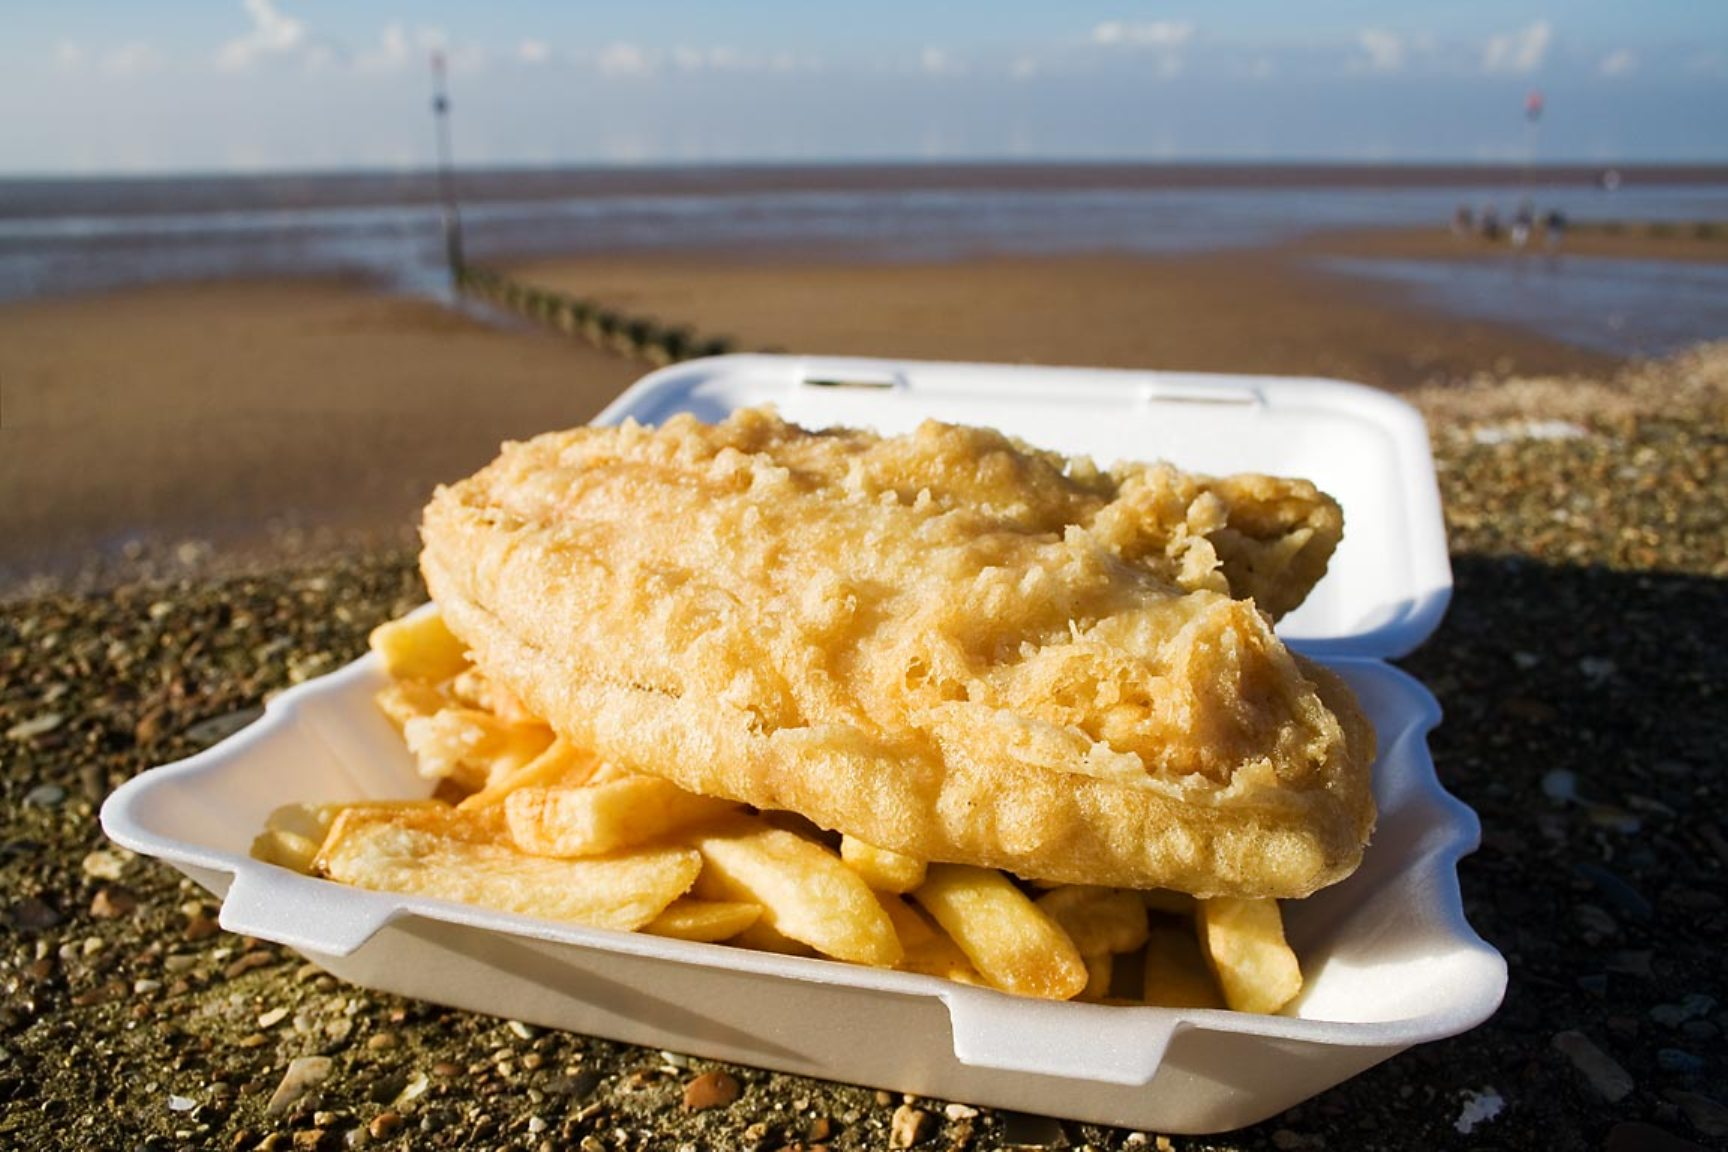 What is the most popular junk food in London and Kent?